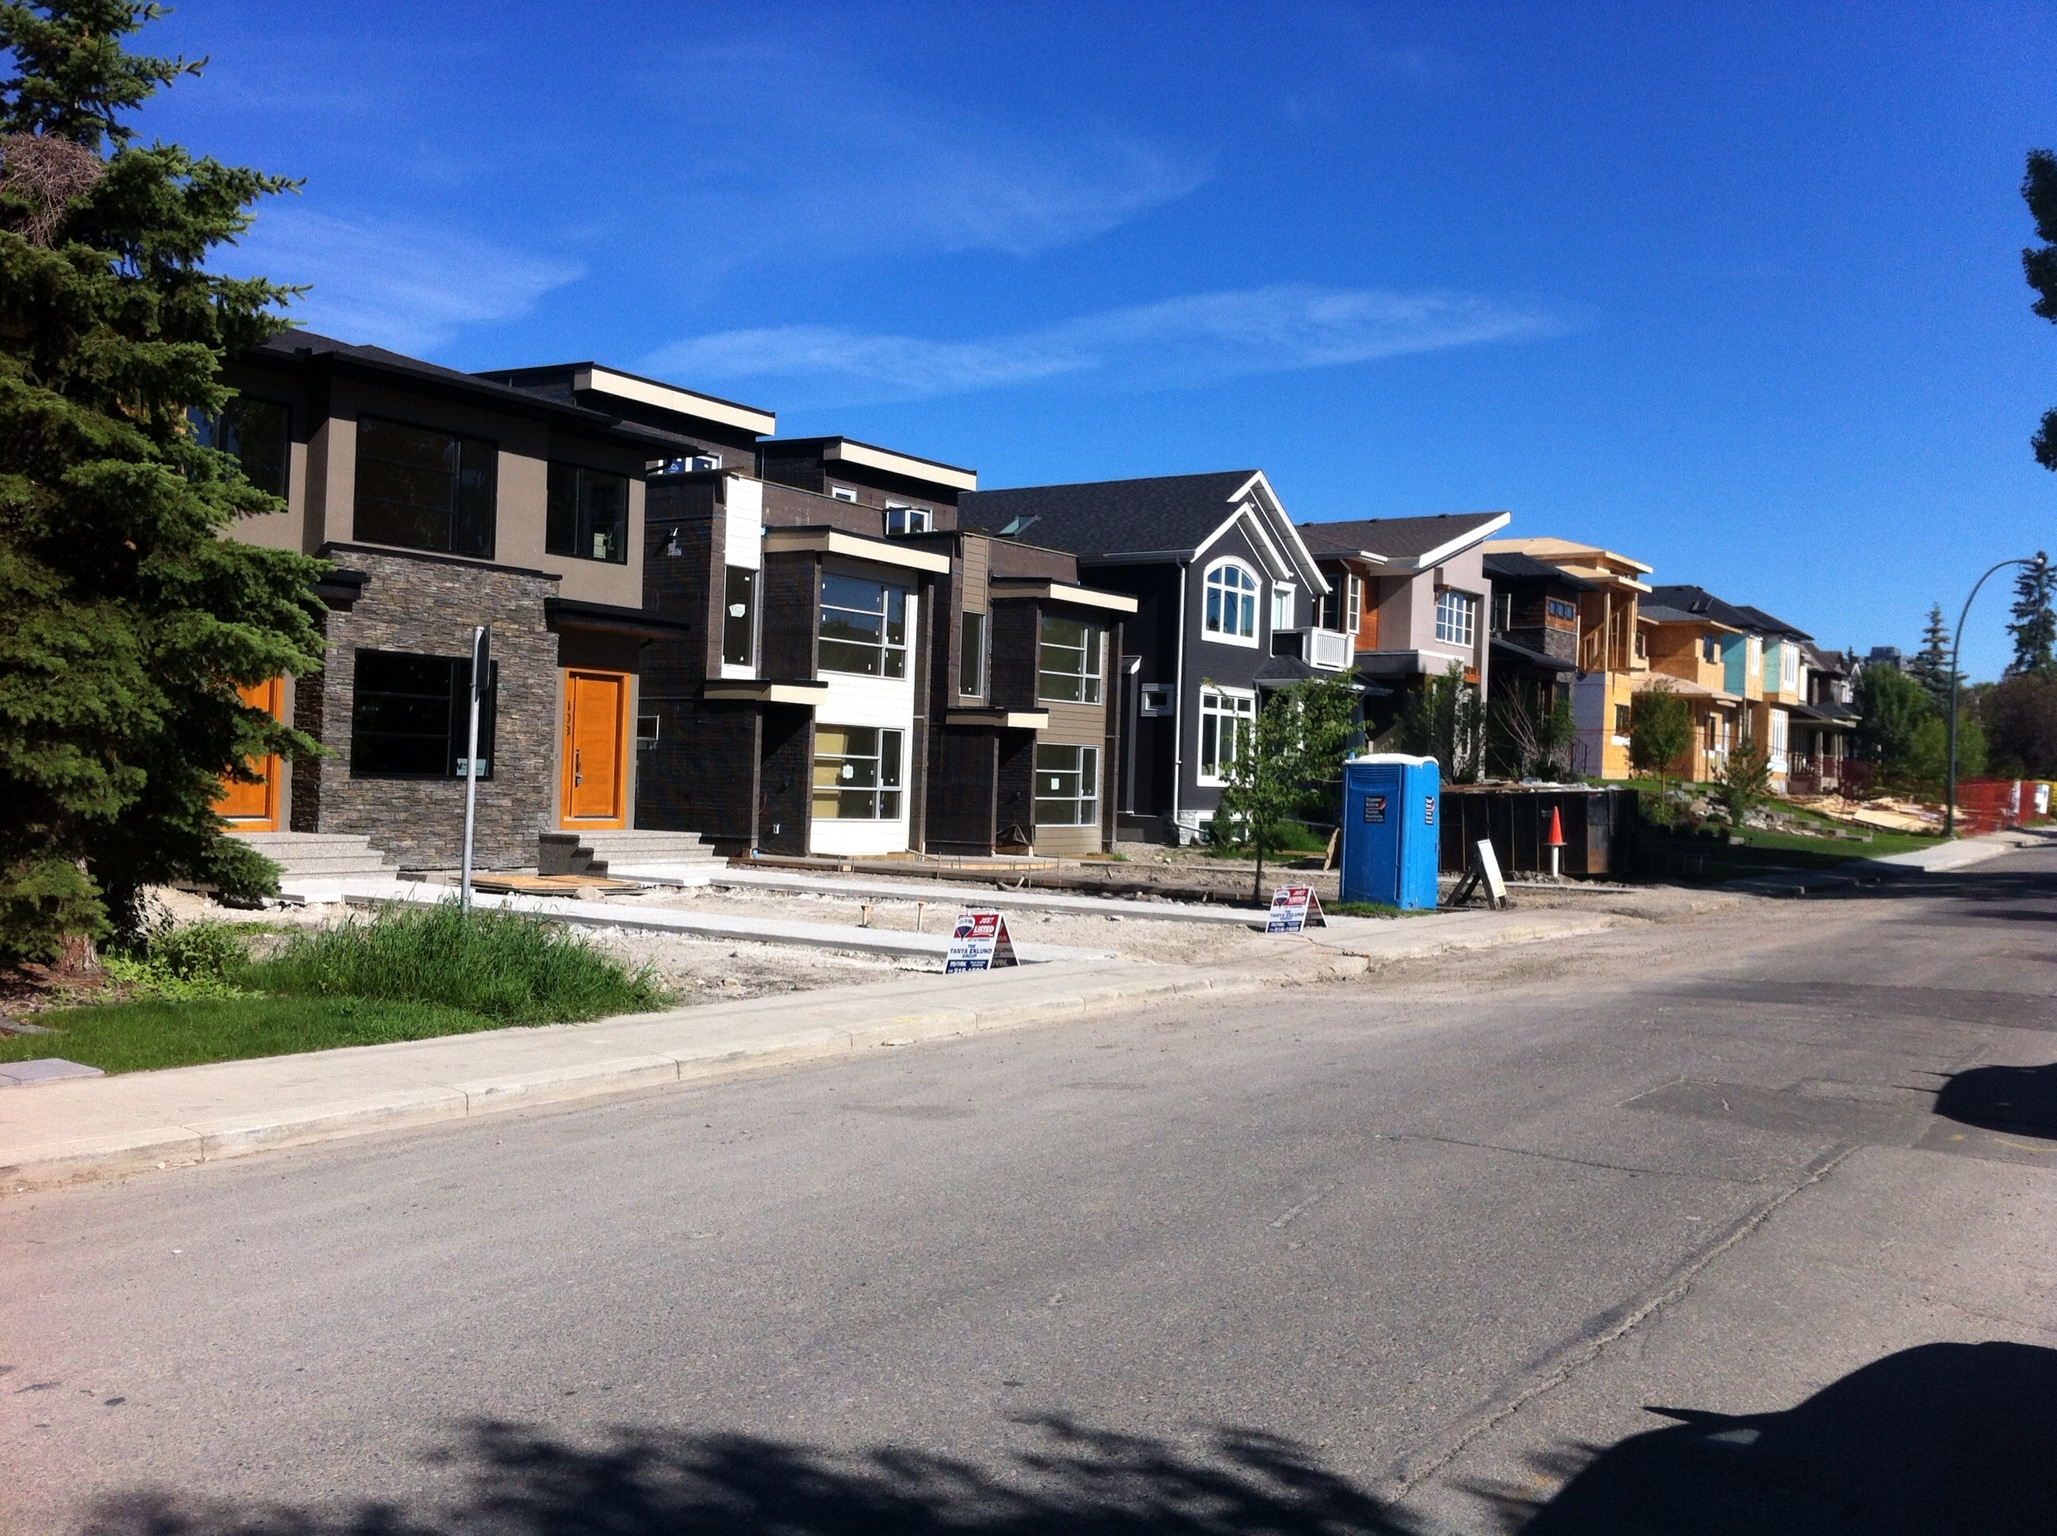 I had to take a second look when I turned on to this Hillhurst street in Calgary's thriving city centre.  At first glance you would think it is a parade of show homes in a new suburb 20+km from downtown. But no this is just one of many streets with multiple infill homes being built within 5 km of dowtown.